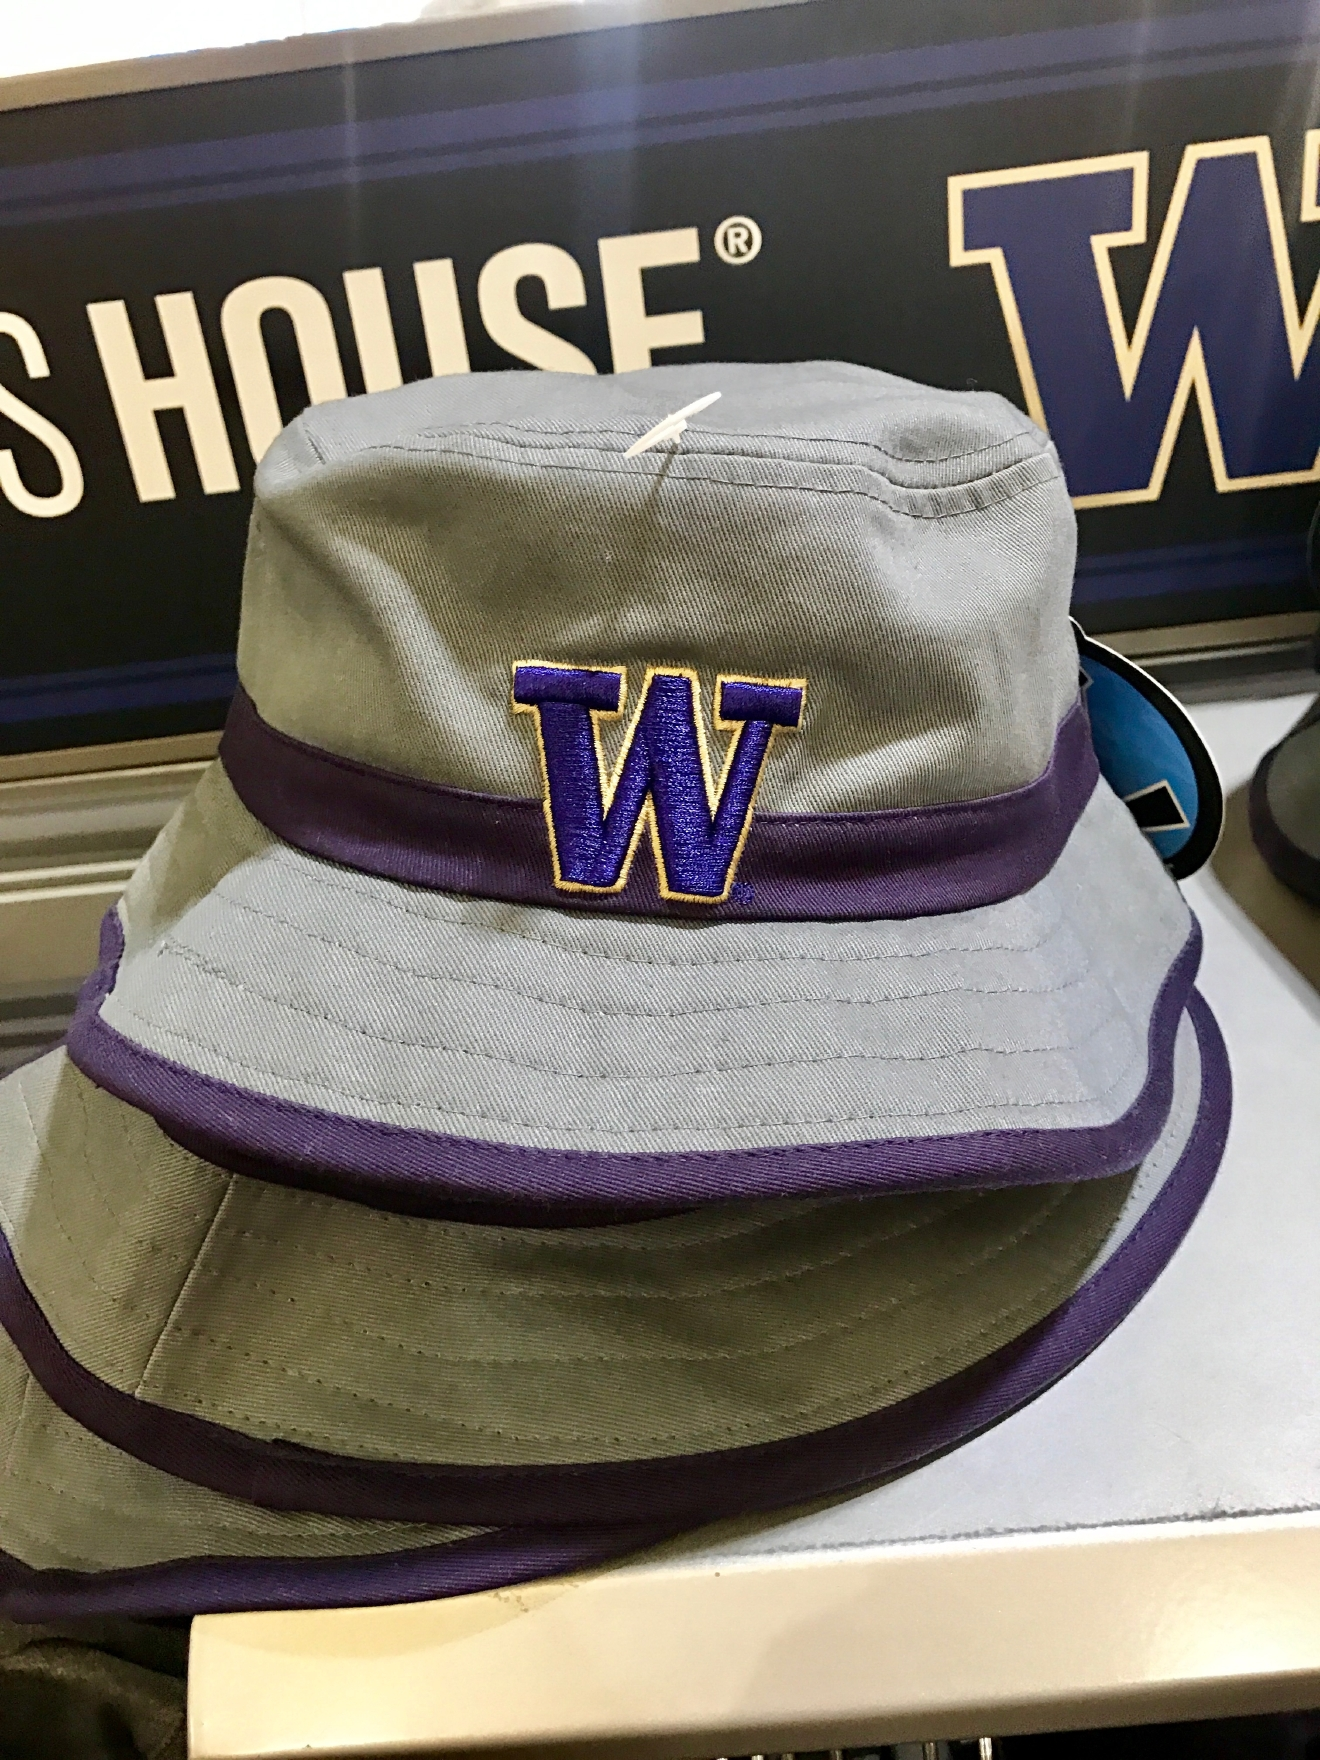 UW Bucket Hat - $29.99                                          Whether you're a current student, alum, or just *love* the Dawgs, it's a pretty exciting time to be a Husky fan right now. Just to catch you up, the University of Washington football team is having one of their best seasons in years, and will be playing the Peach Bowl in Atlanta on December 31st. If you know a Dawg fan, they're probably salivating at the mouth right about now. Which is why it's a perfect time to give them a themed gift! Here are some of the coolest Husky gear we saw at the University Bookstore on the Avenue during our last visit. Pro Tip: They're open 10 a.m. - 7 p.m. on Christmas Eve! (Image: Britt Thorson / Seattle Refined)